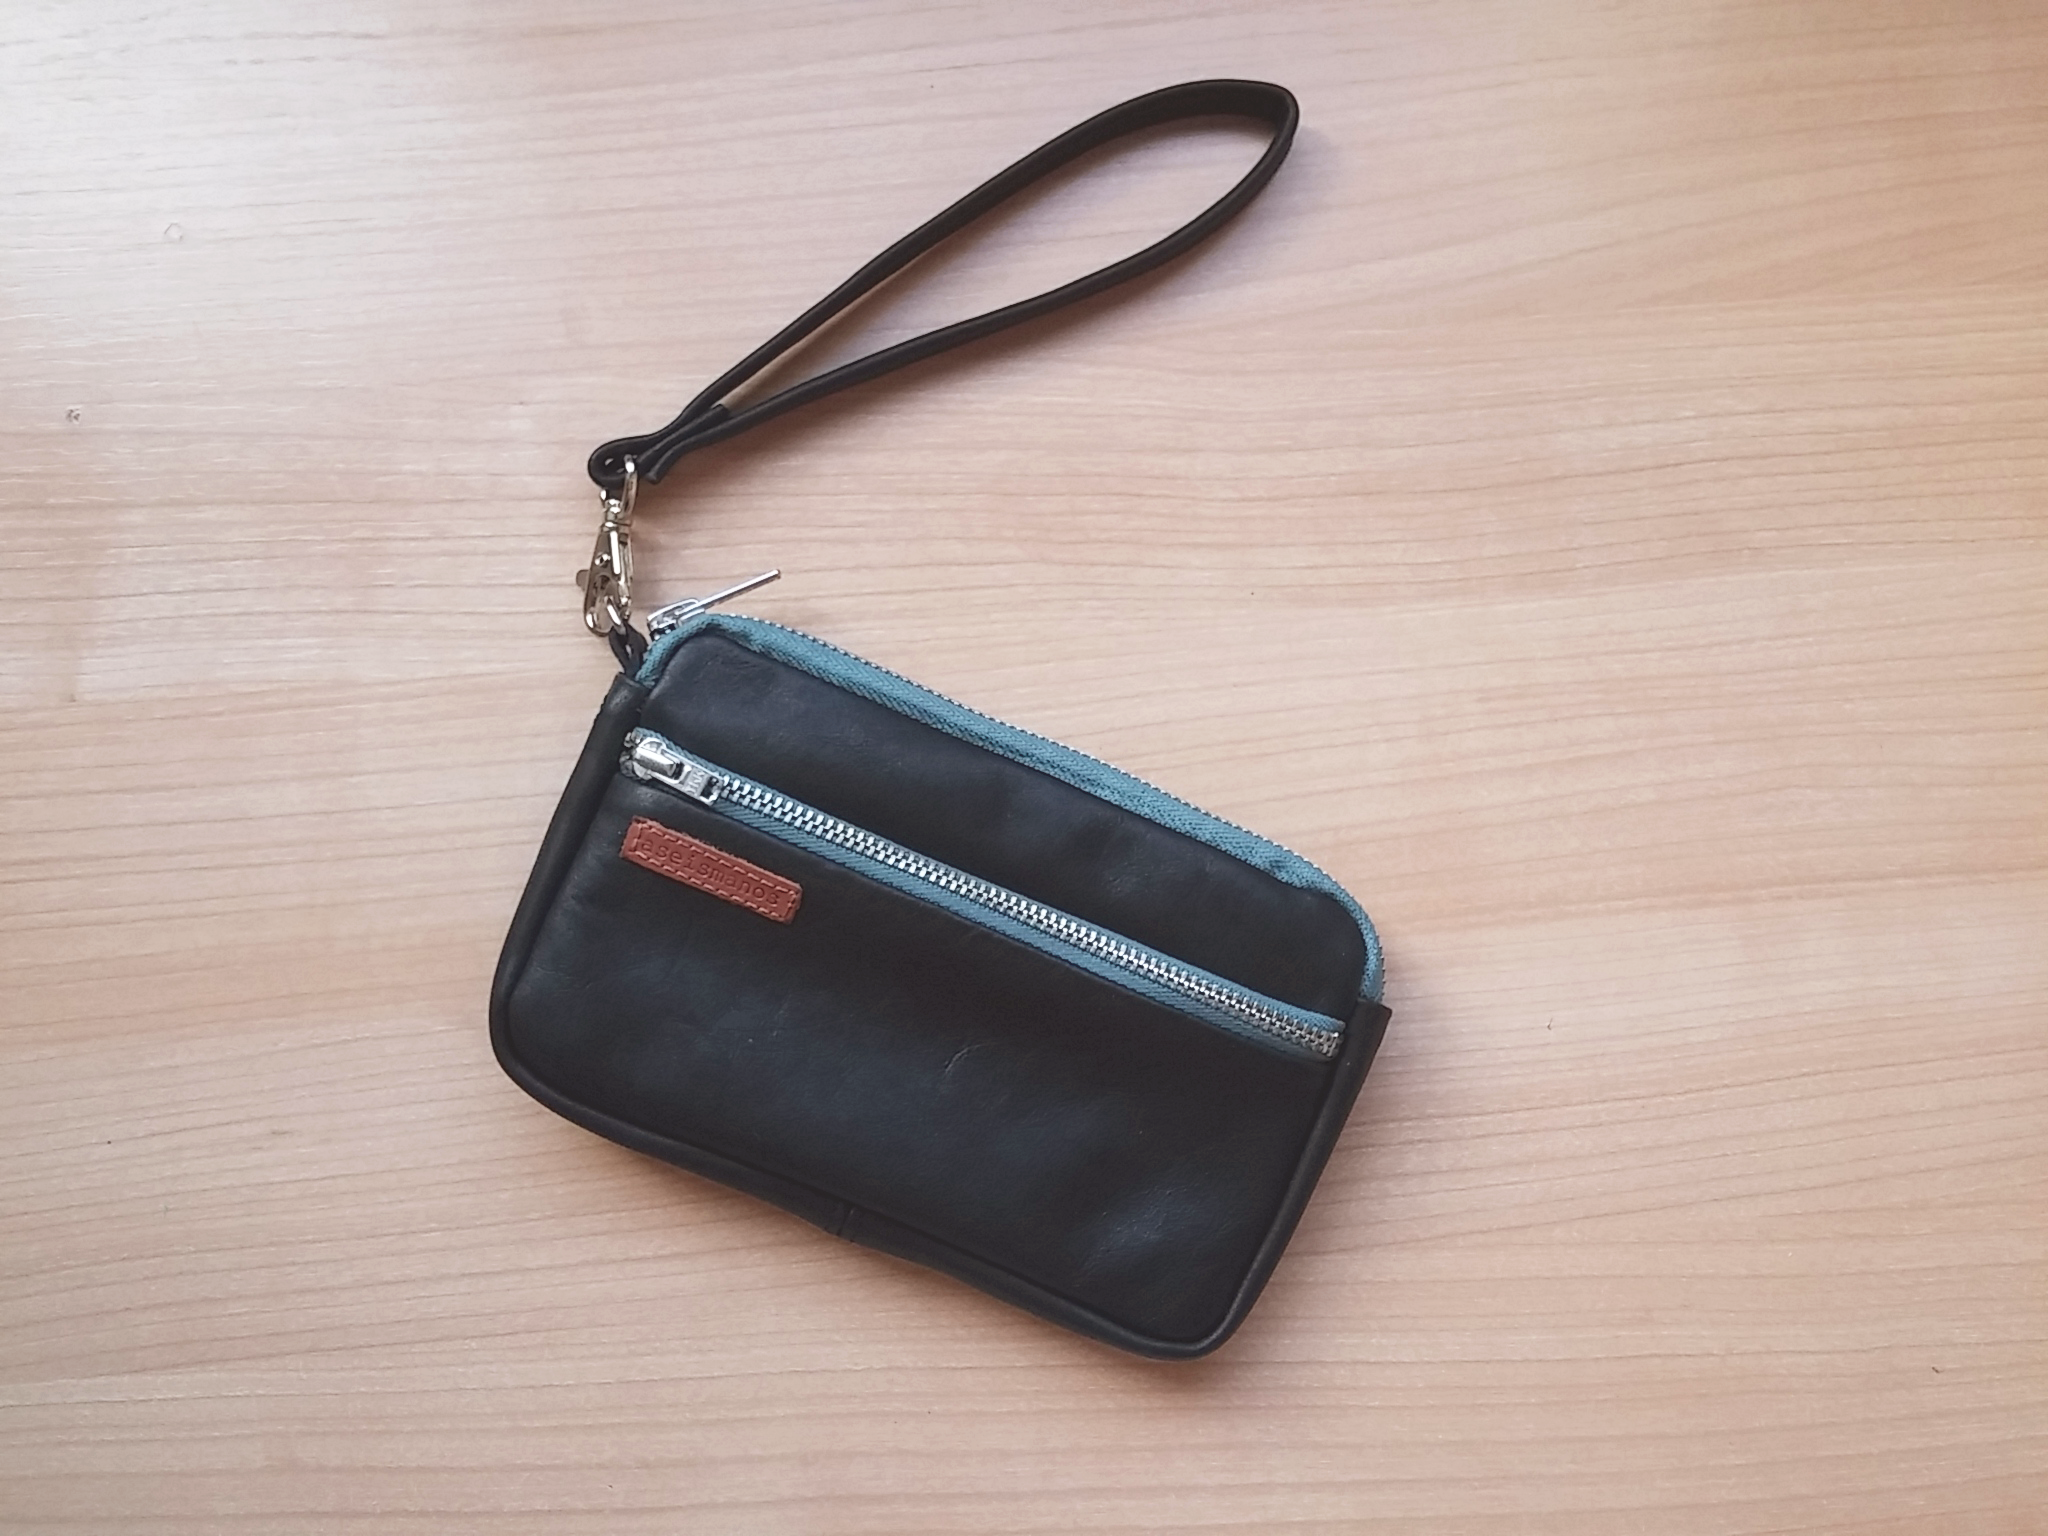 blalck leather wristlet pouch